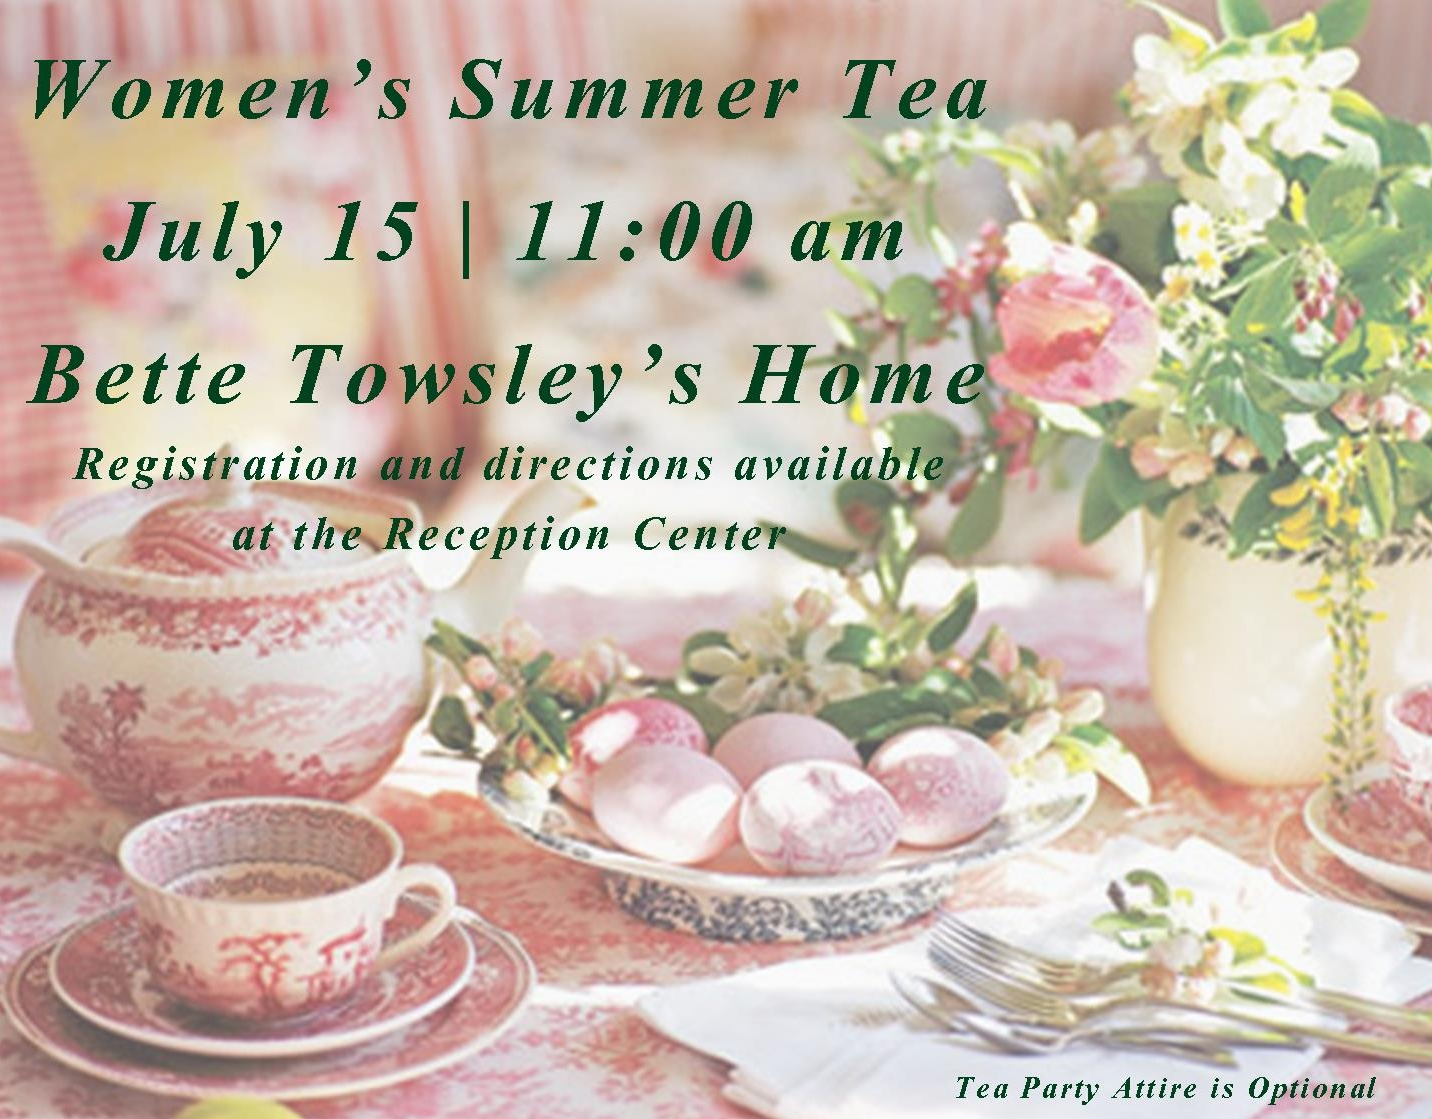 Summer Tea Party - July 15 2015